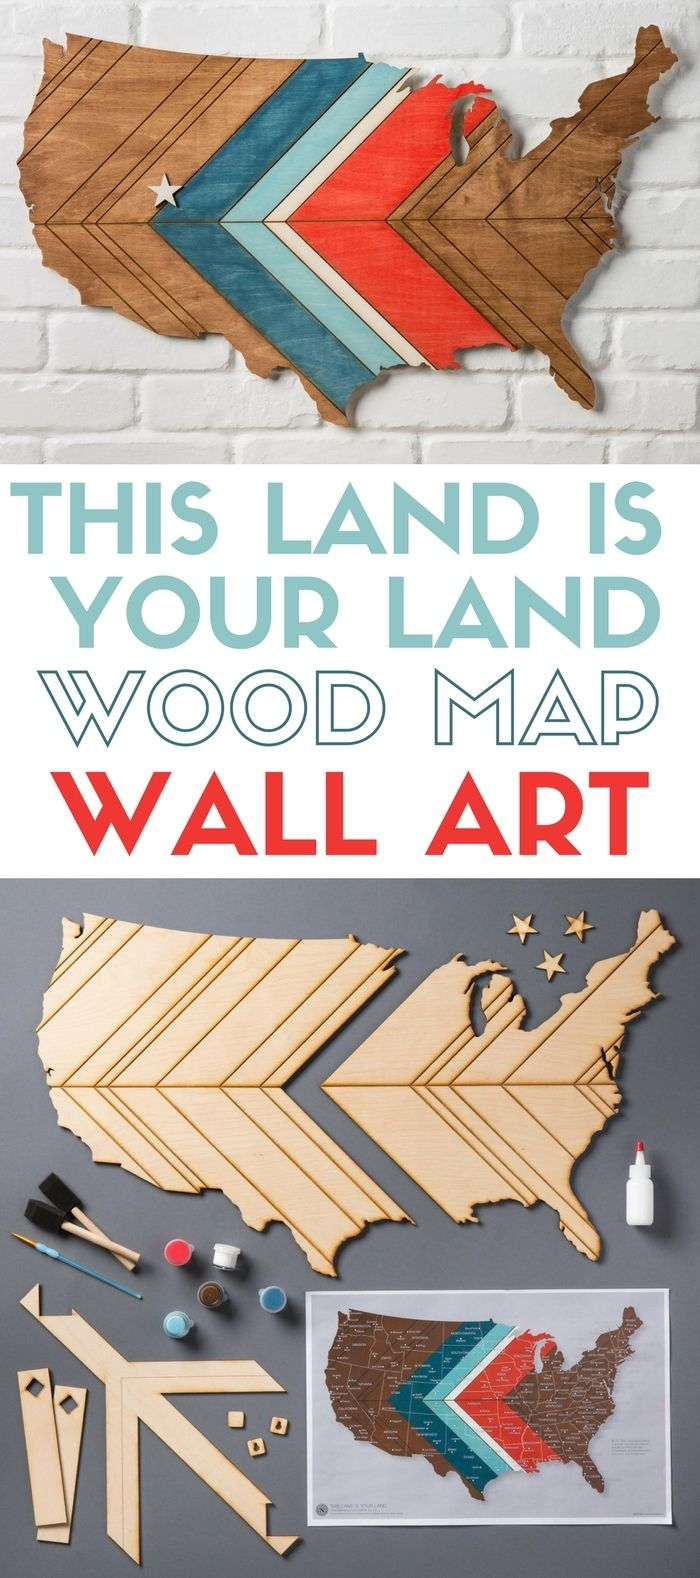 This land is your land apostrophe s craft kit wall art home create an american map for your patriotic home decor this diy craft kit from apostrophe s makes it quick and easy solutioingenieria Image collections